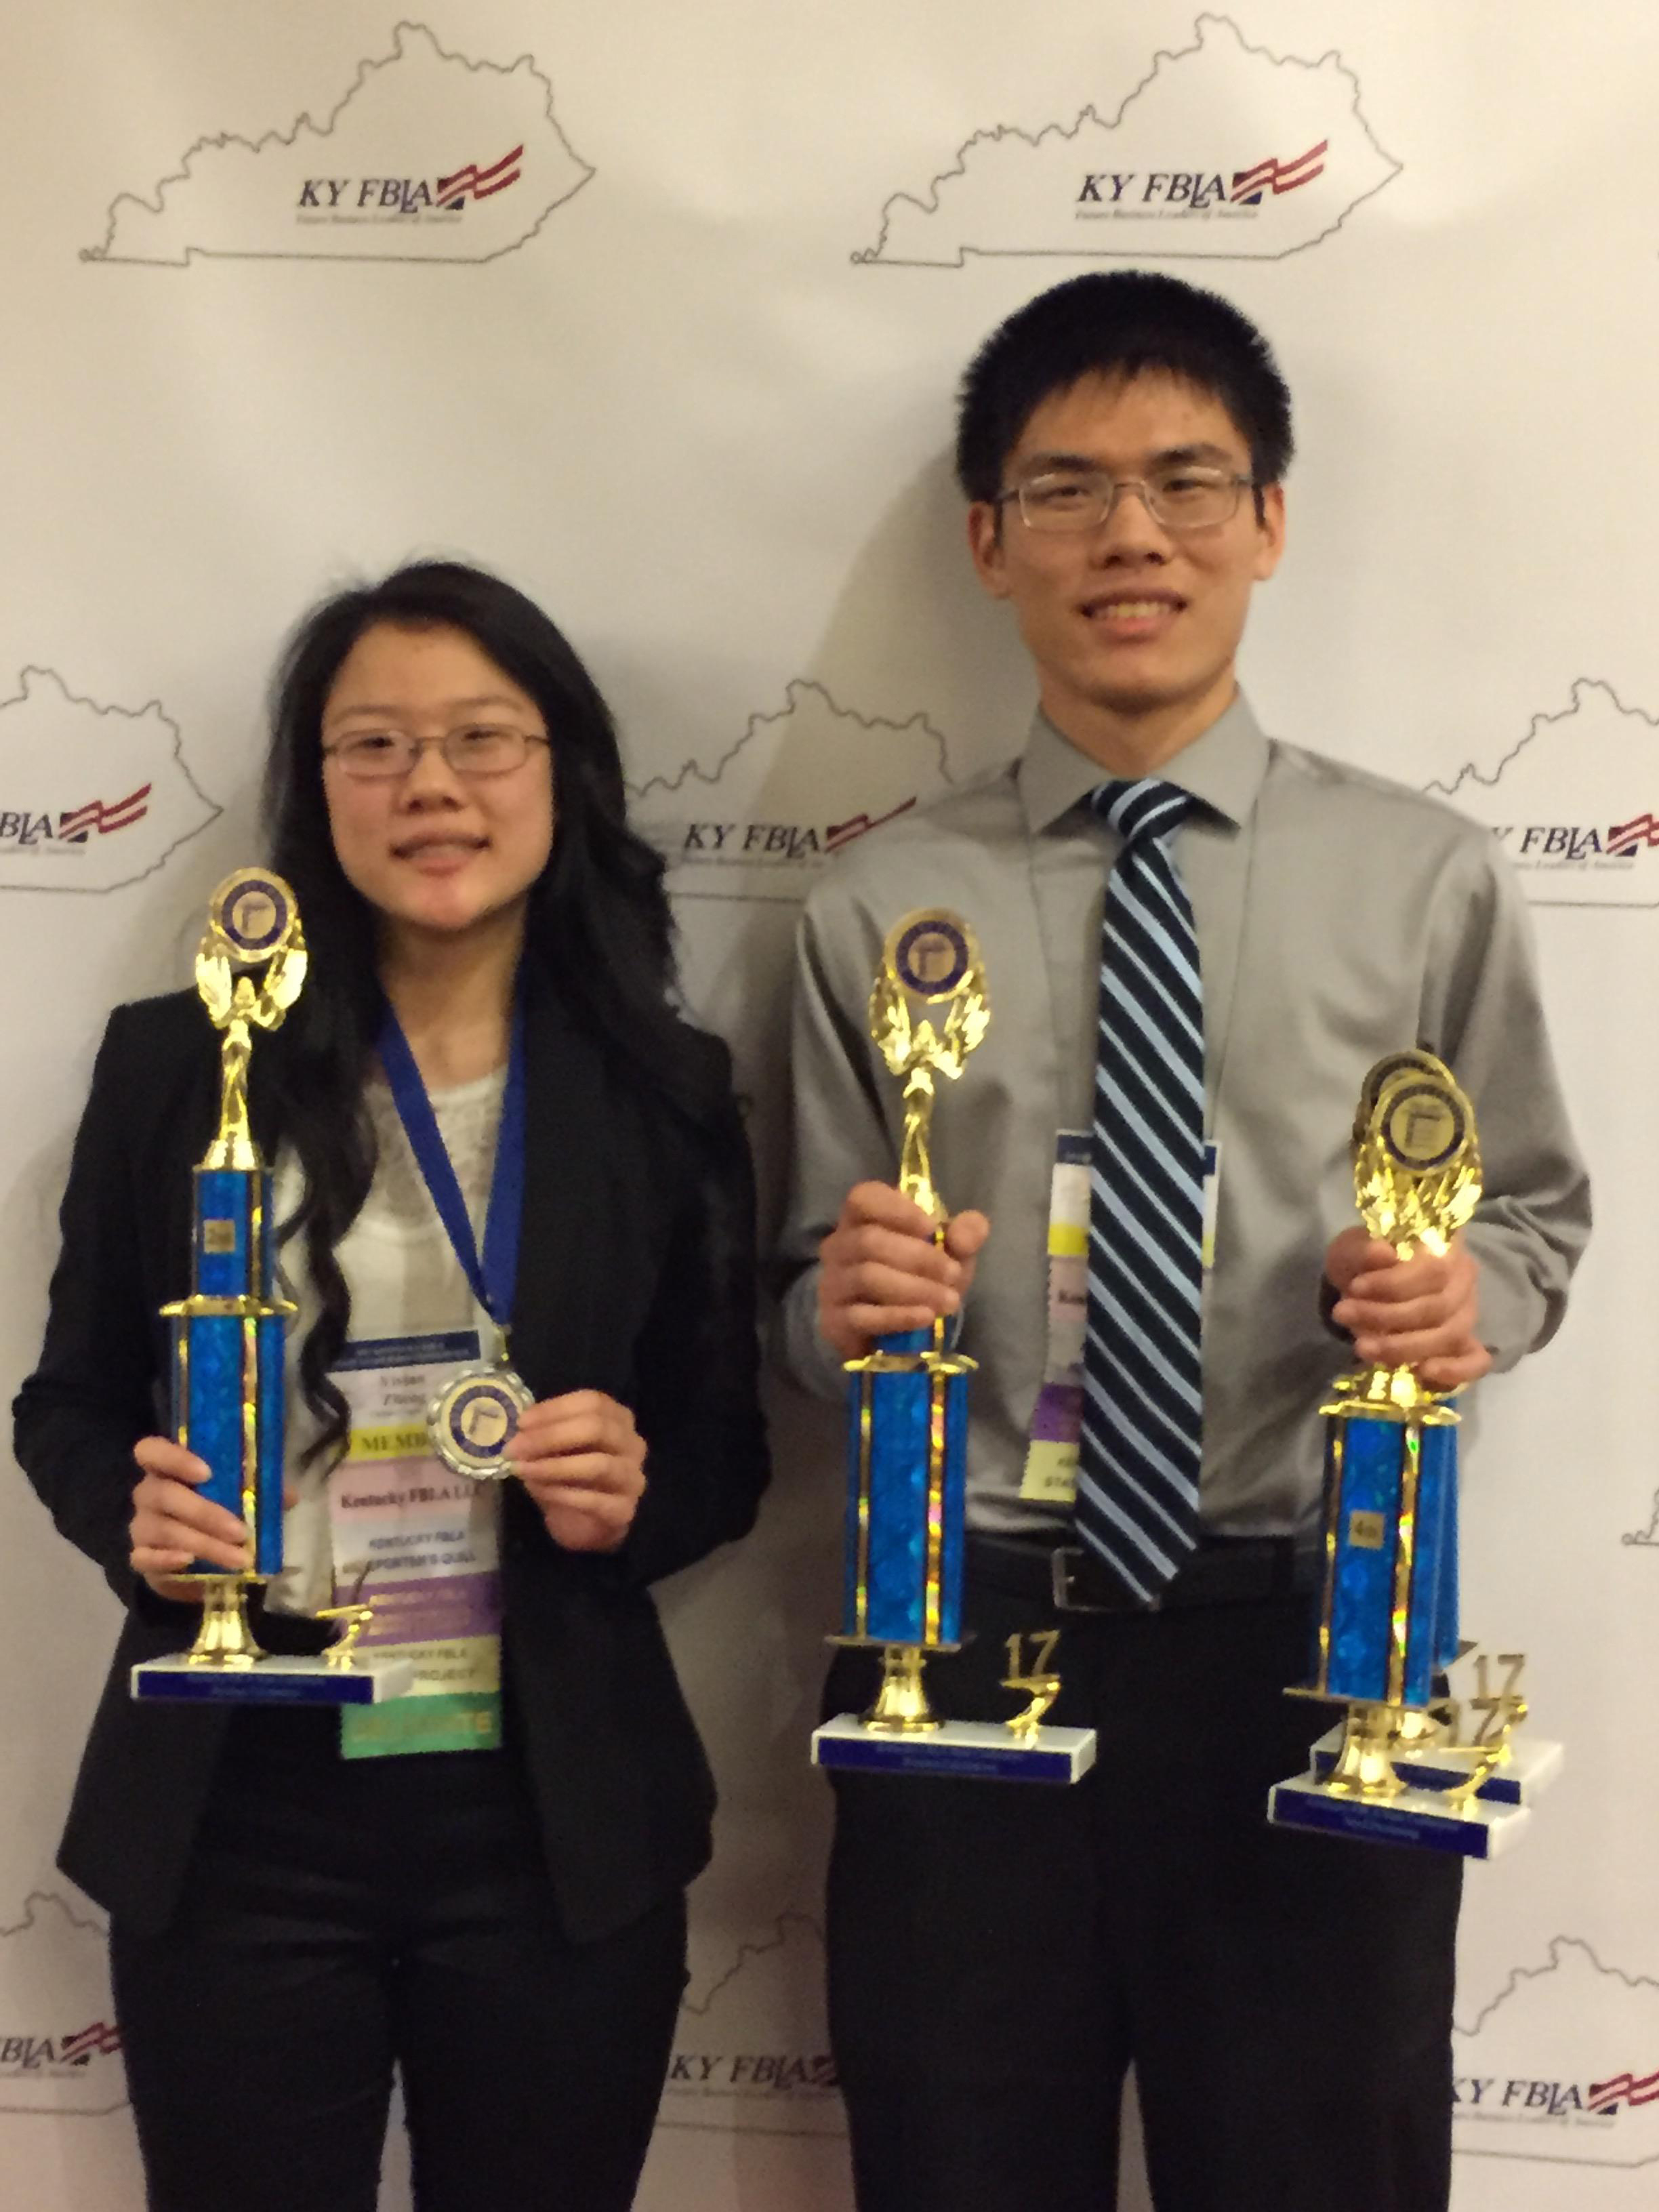 Pictured above are Vivian Zheng and Frank Zheng with their awards from the FBLA State Leadership Conference.